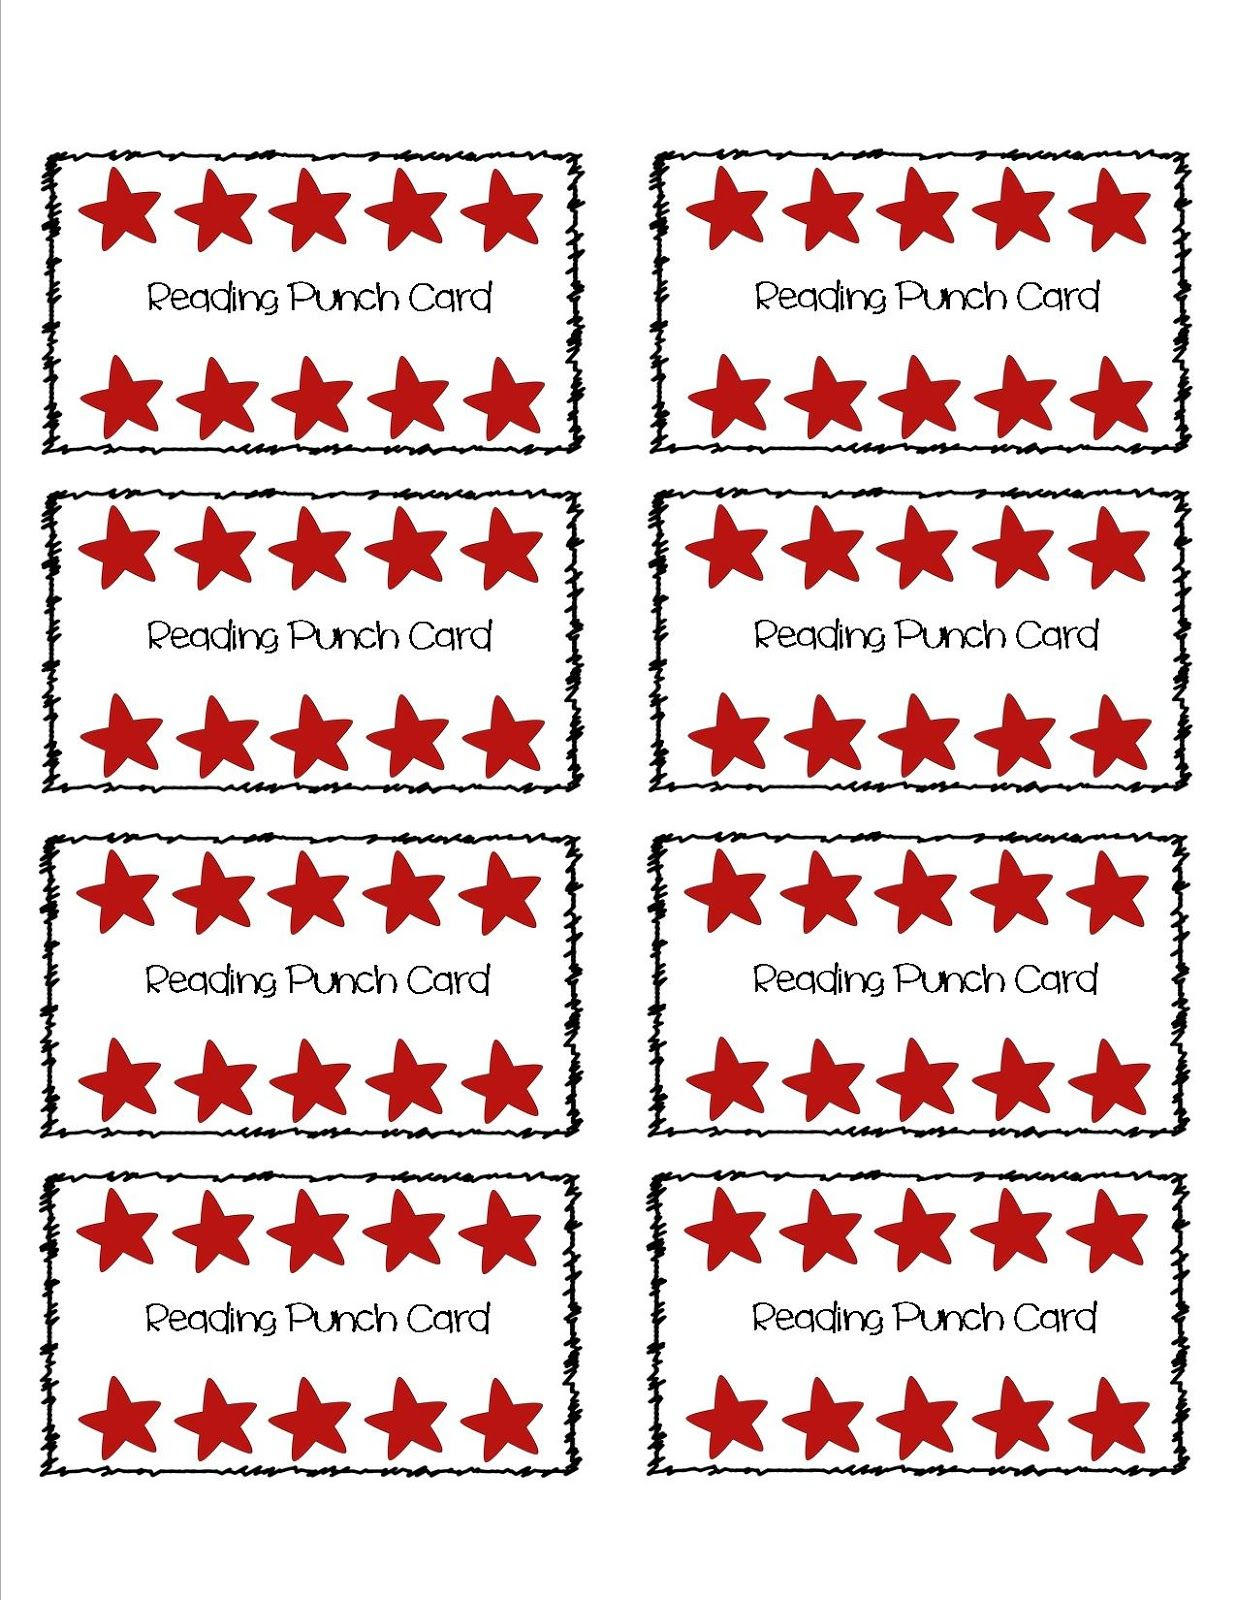 Keeping It Core Punch Cards And 2 Posts In 1 Day Giveaway Behavior Punch Cards Punch Cards Card Templates Free